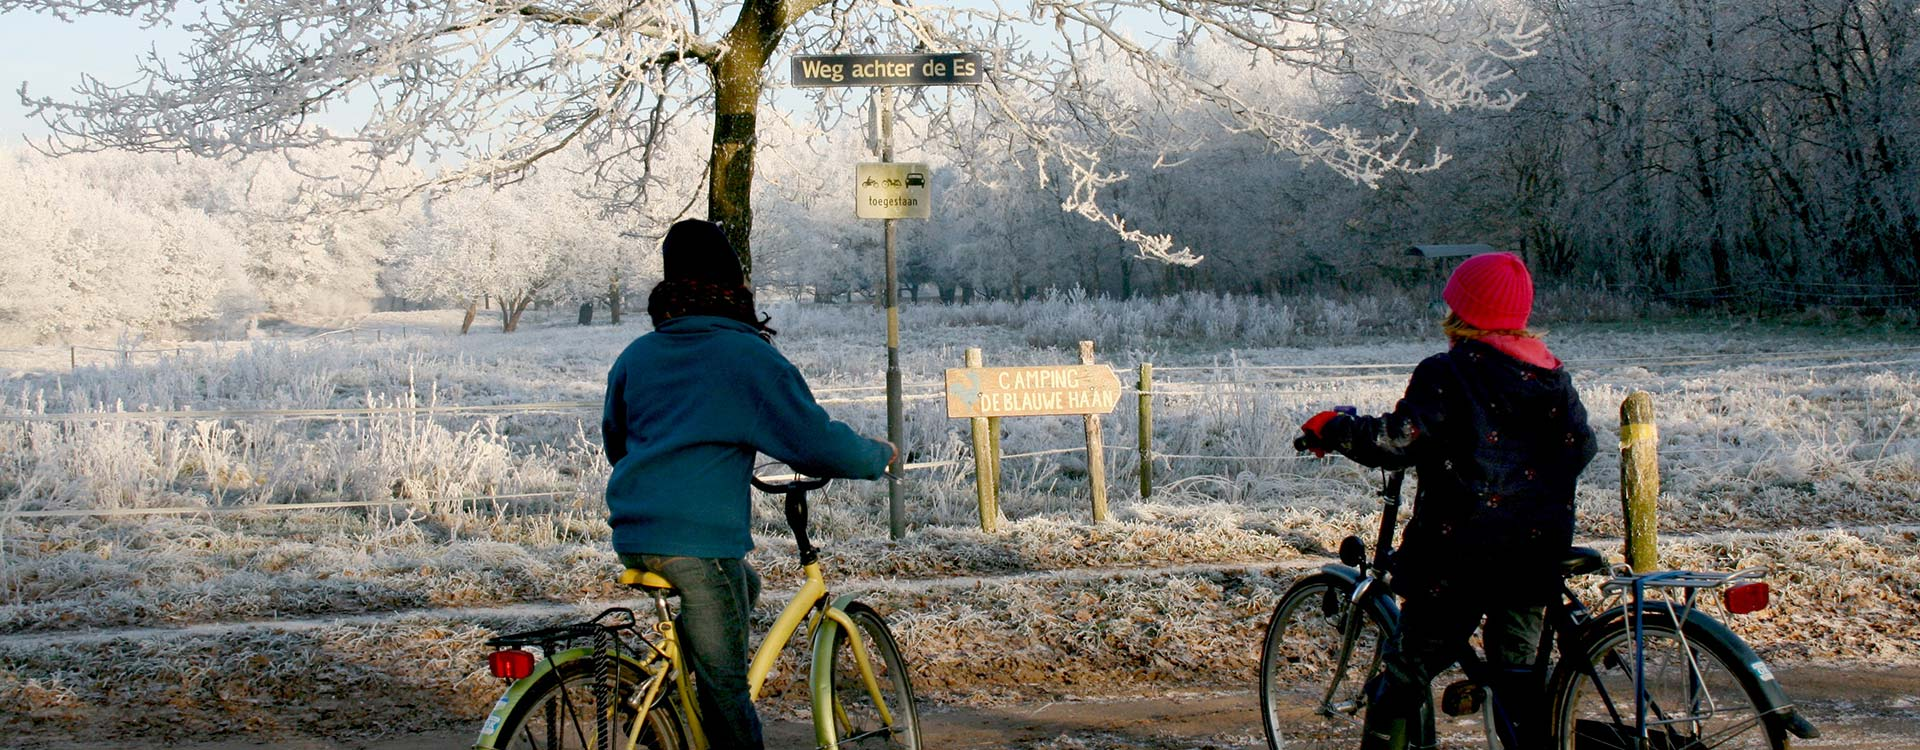 winterkamperen-in-drenthe